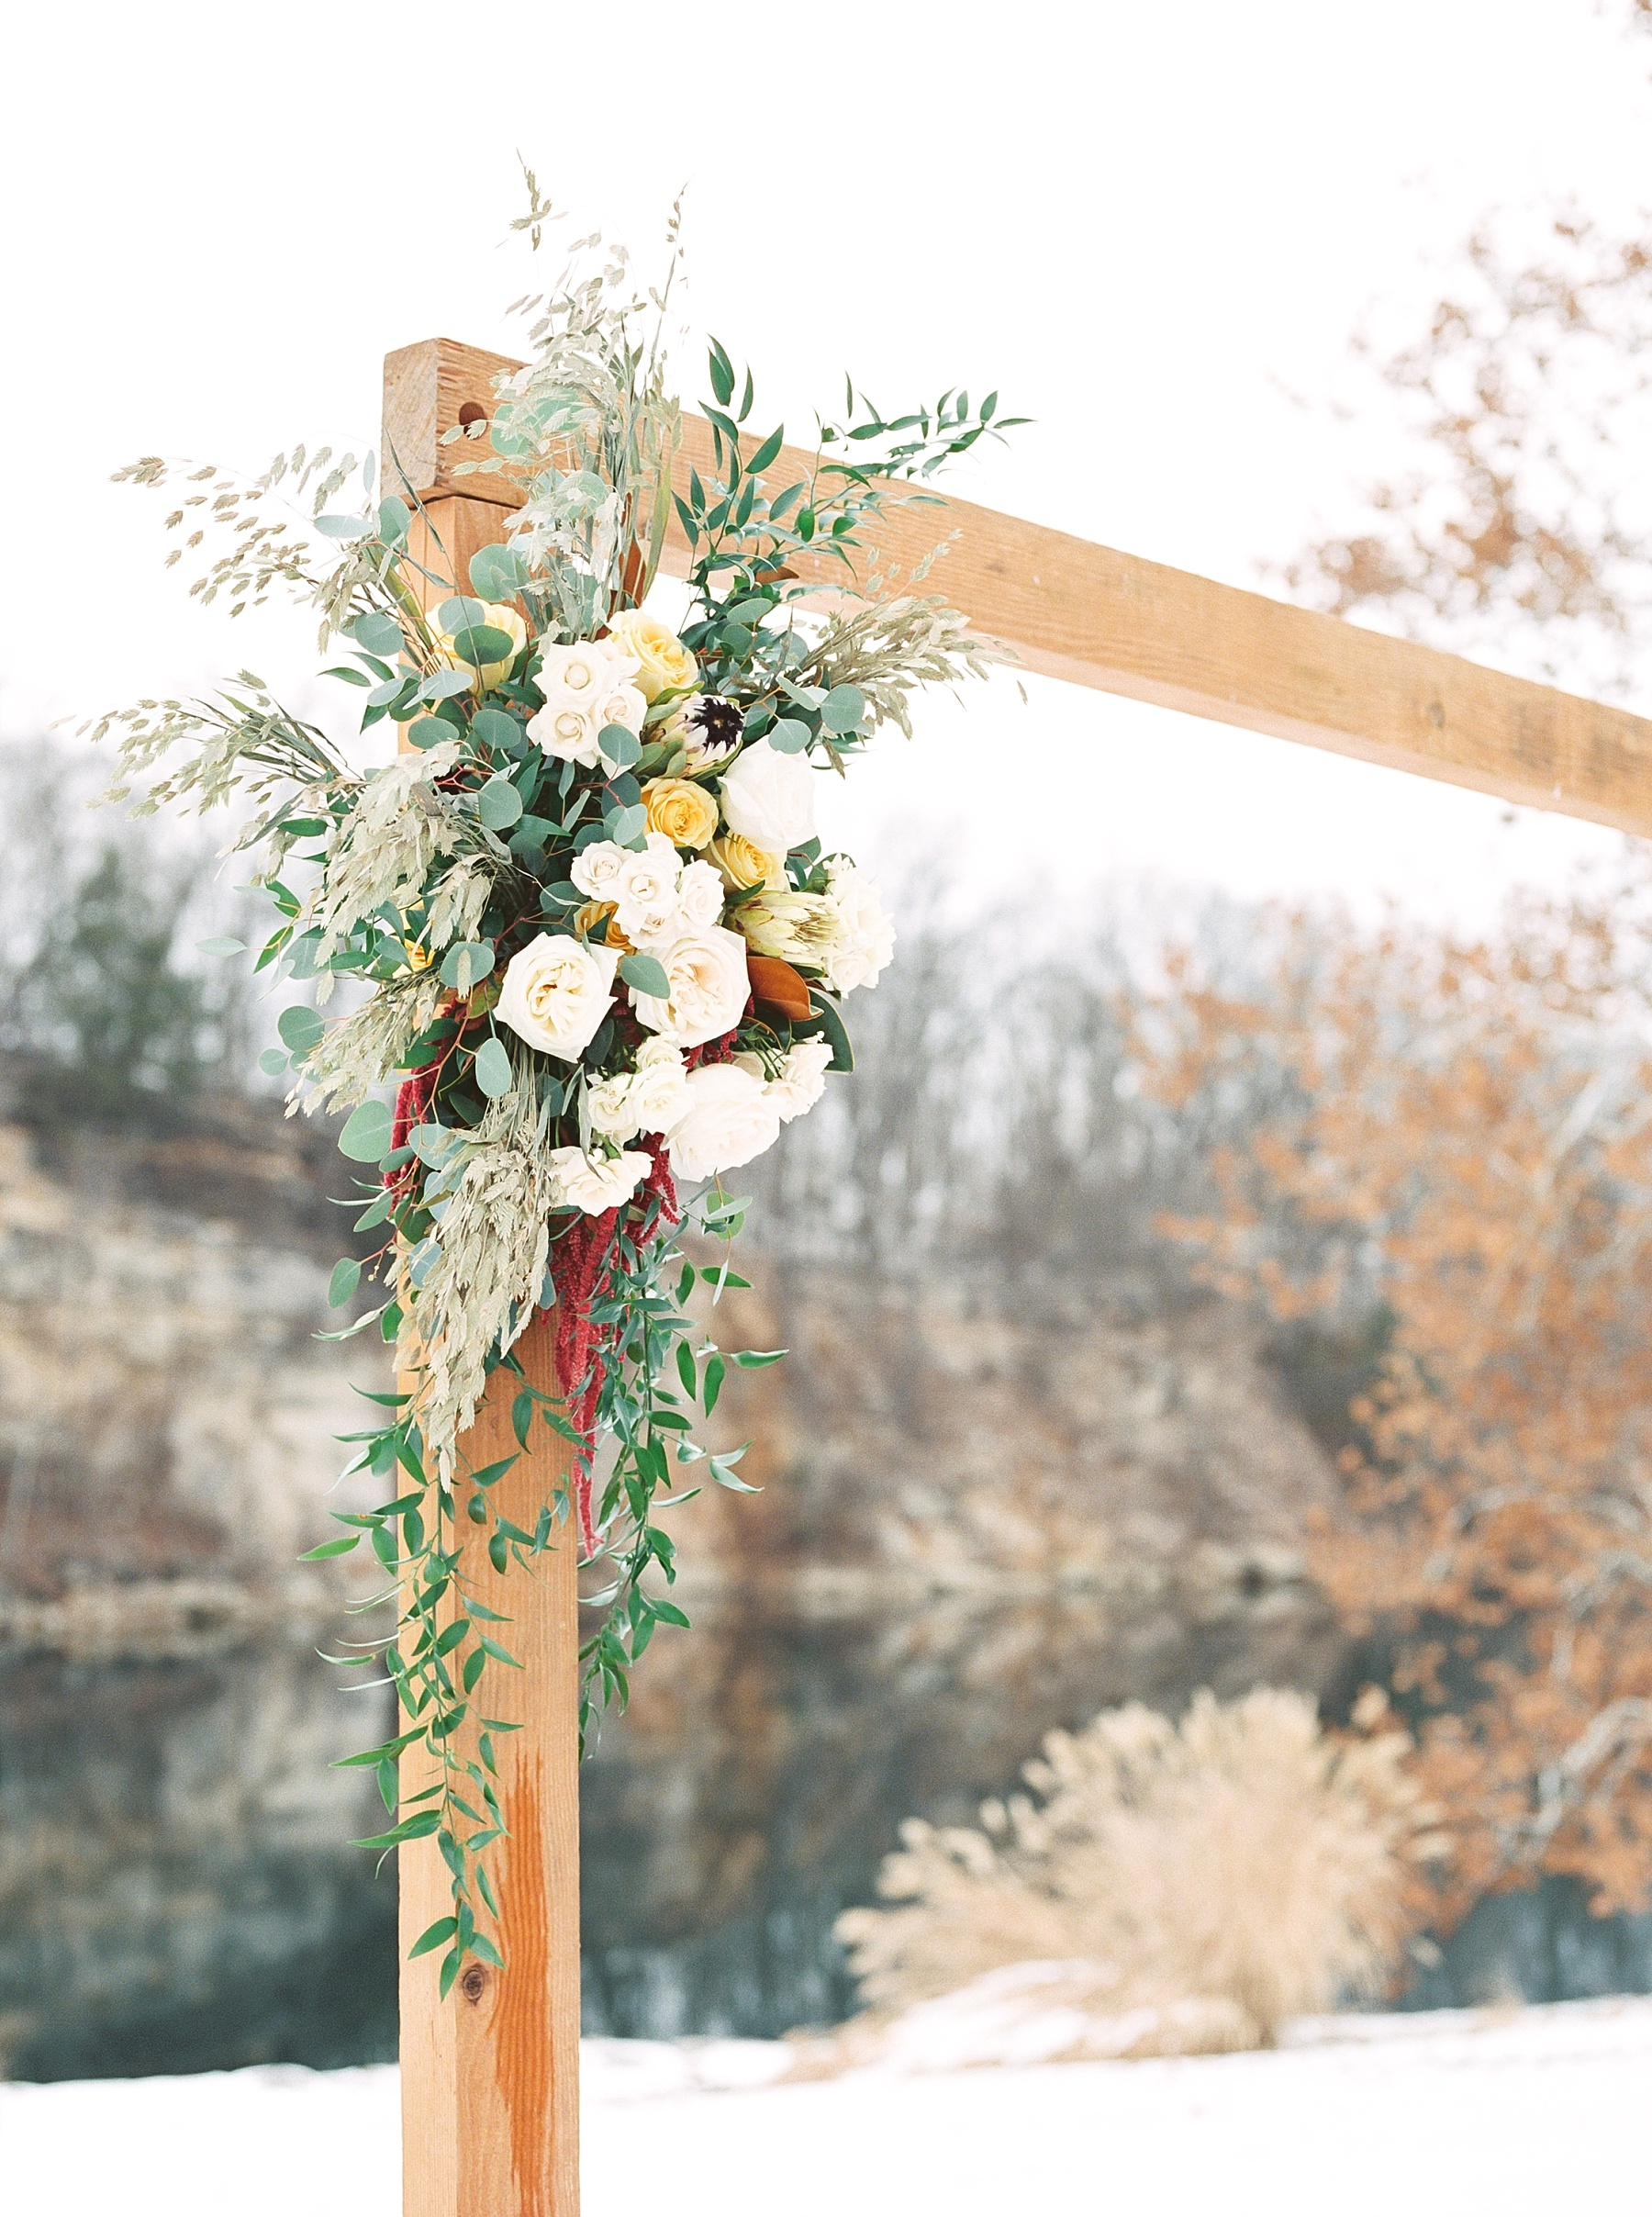 Snowy Winter Wedding at Wildcliff Events Lake With Earthy Jewel Tones and Organic Refined Style by Kelsi Kliethermes Photography Kansas City Missouri Wedding Photographer_0118.jpg